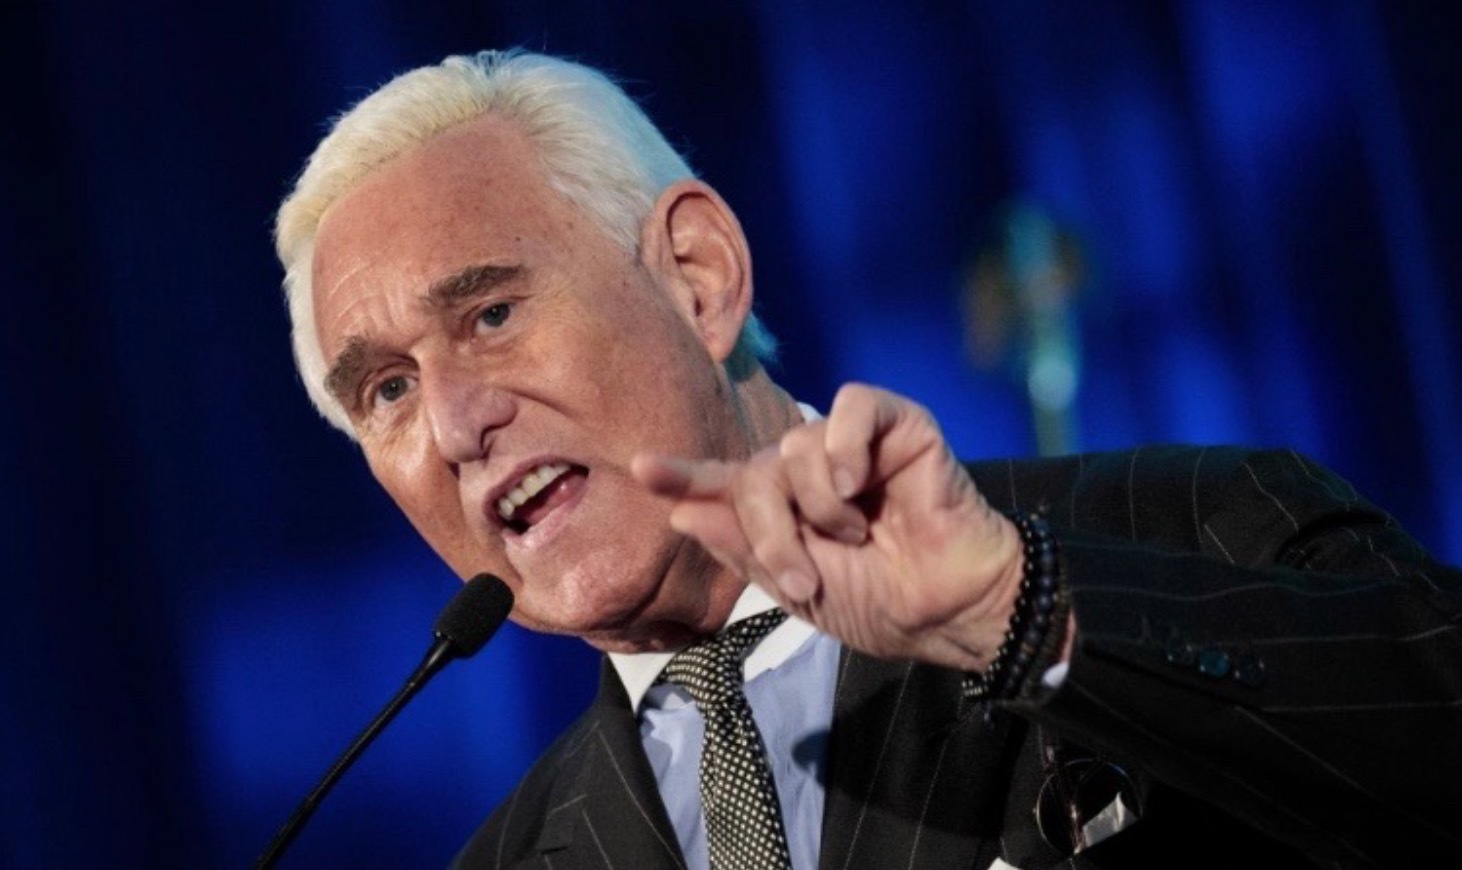 Roger Stone endorses Spalding's candidacy to defeat Wasserman Schultz